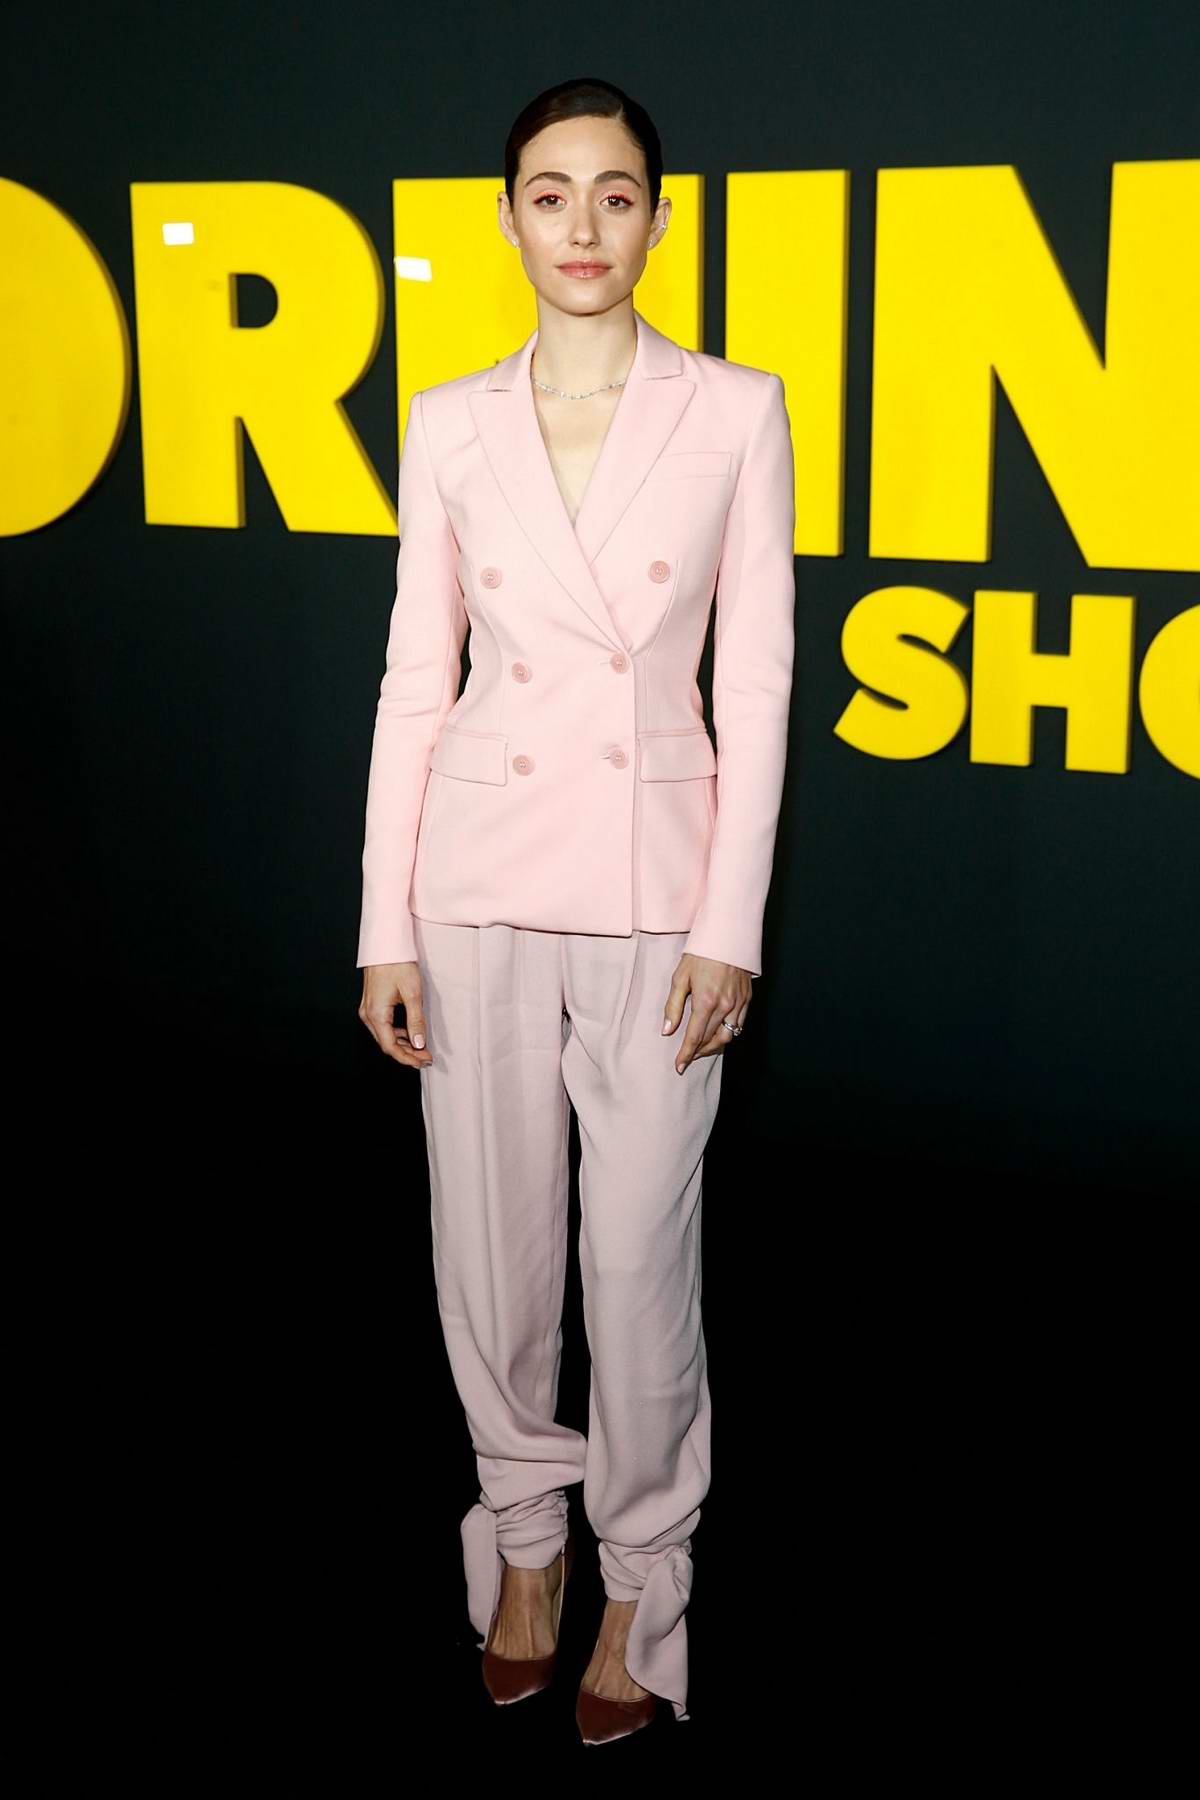 Emmy Rossum attends the Premiere of Apple TV+'s 'The Morning Show' at Lincoln Center in New York City